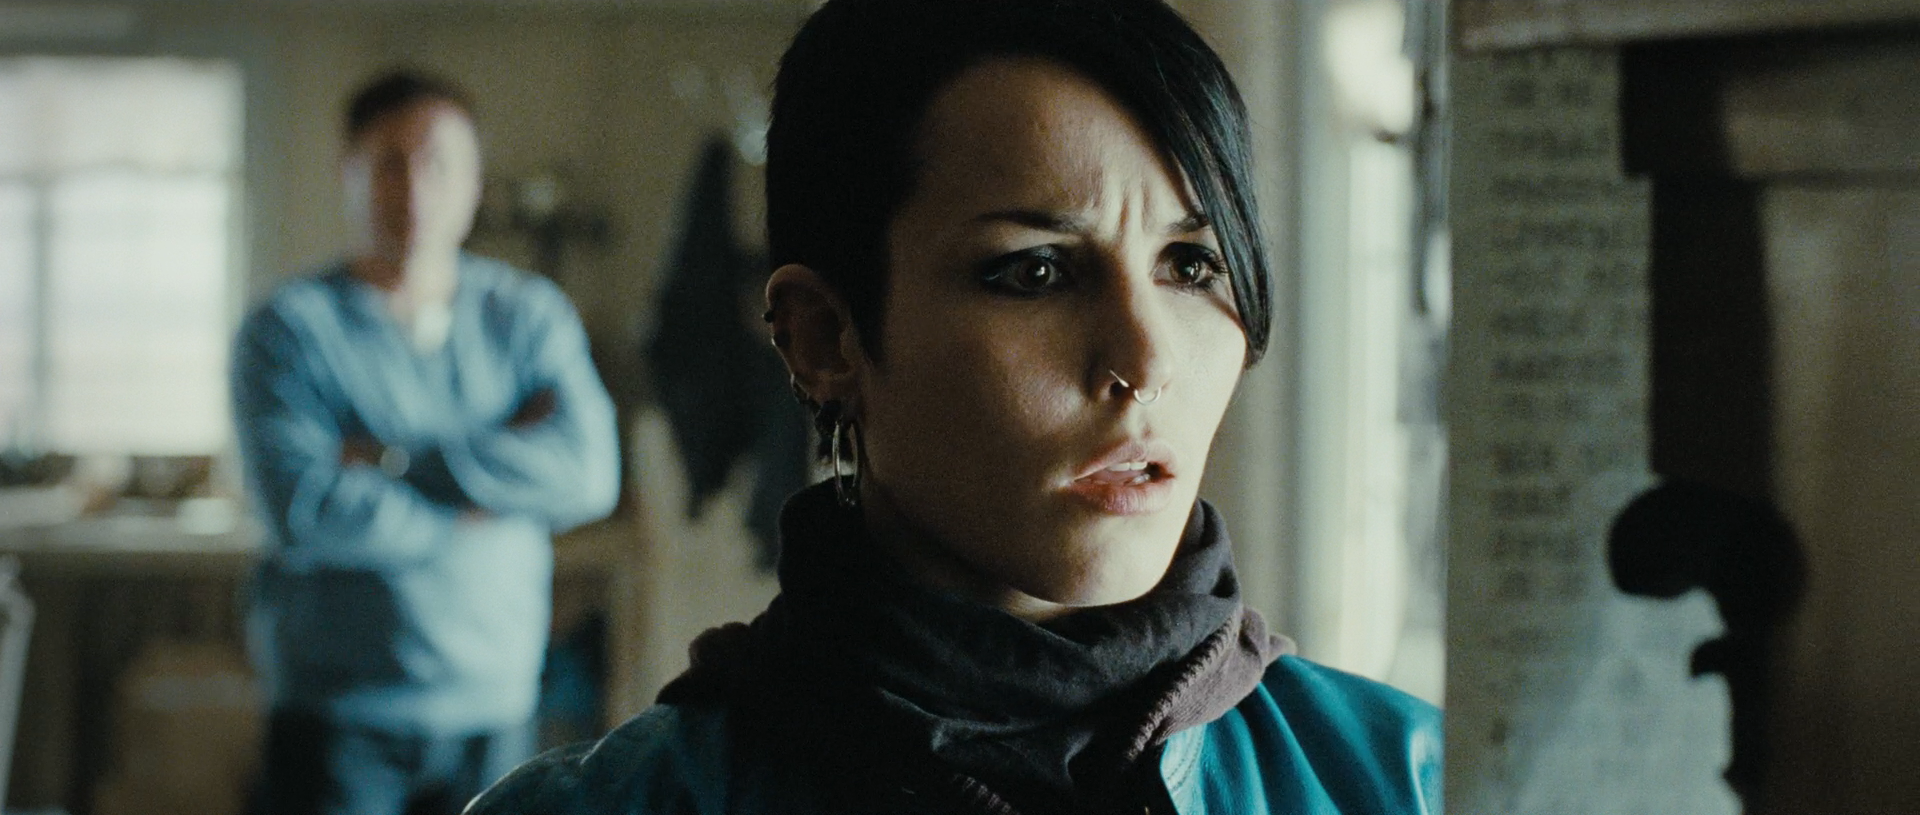 'The Girl with the Dragon Tattoo' (2009): Review | Express ...